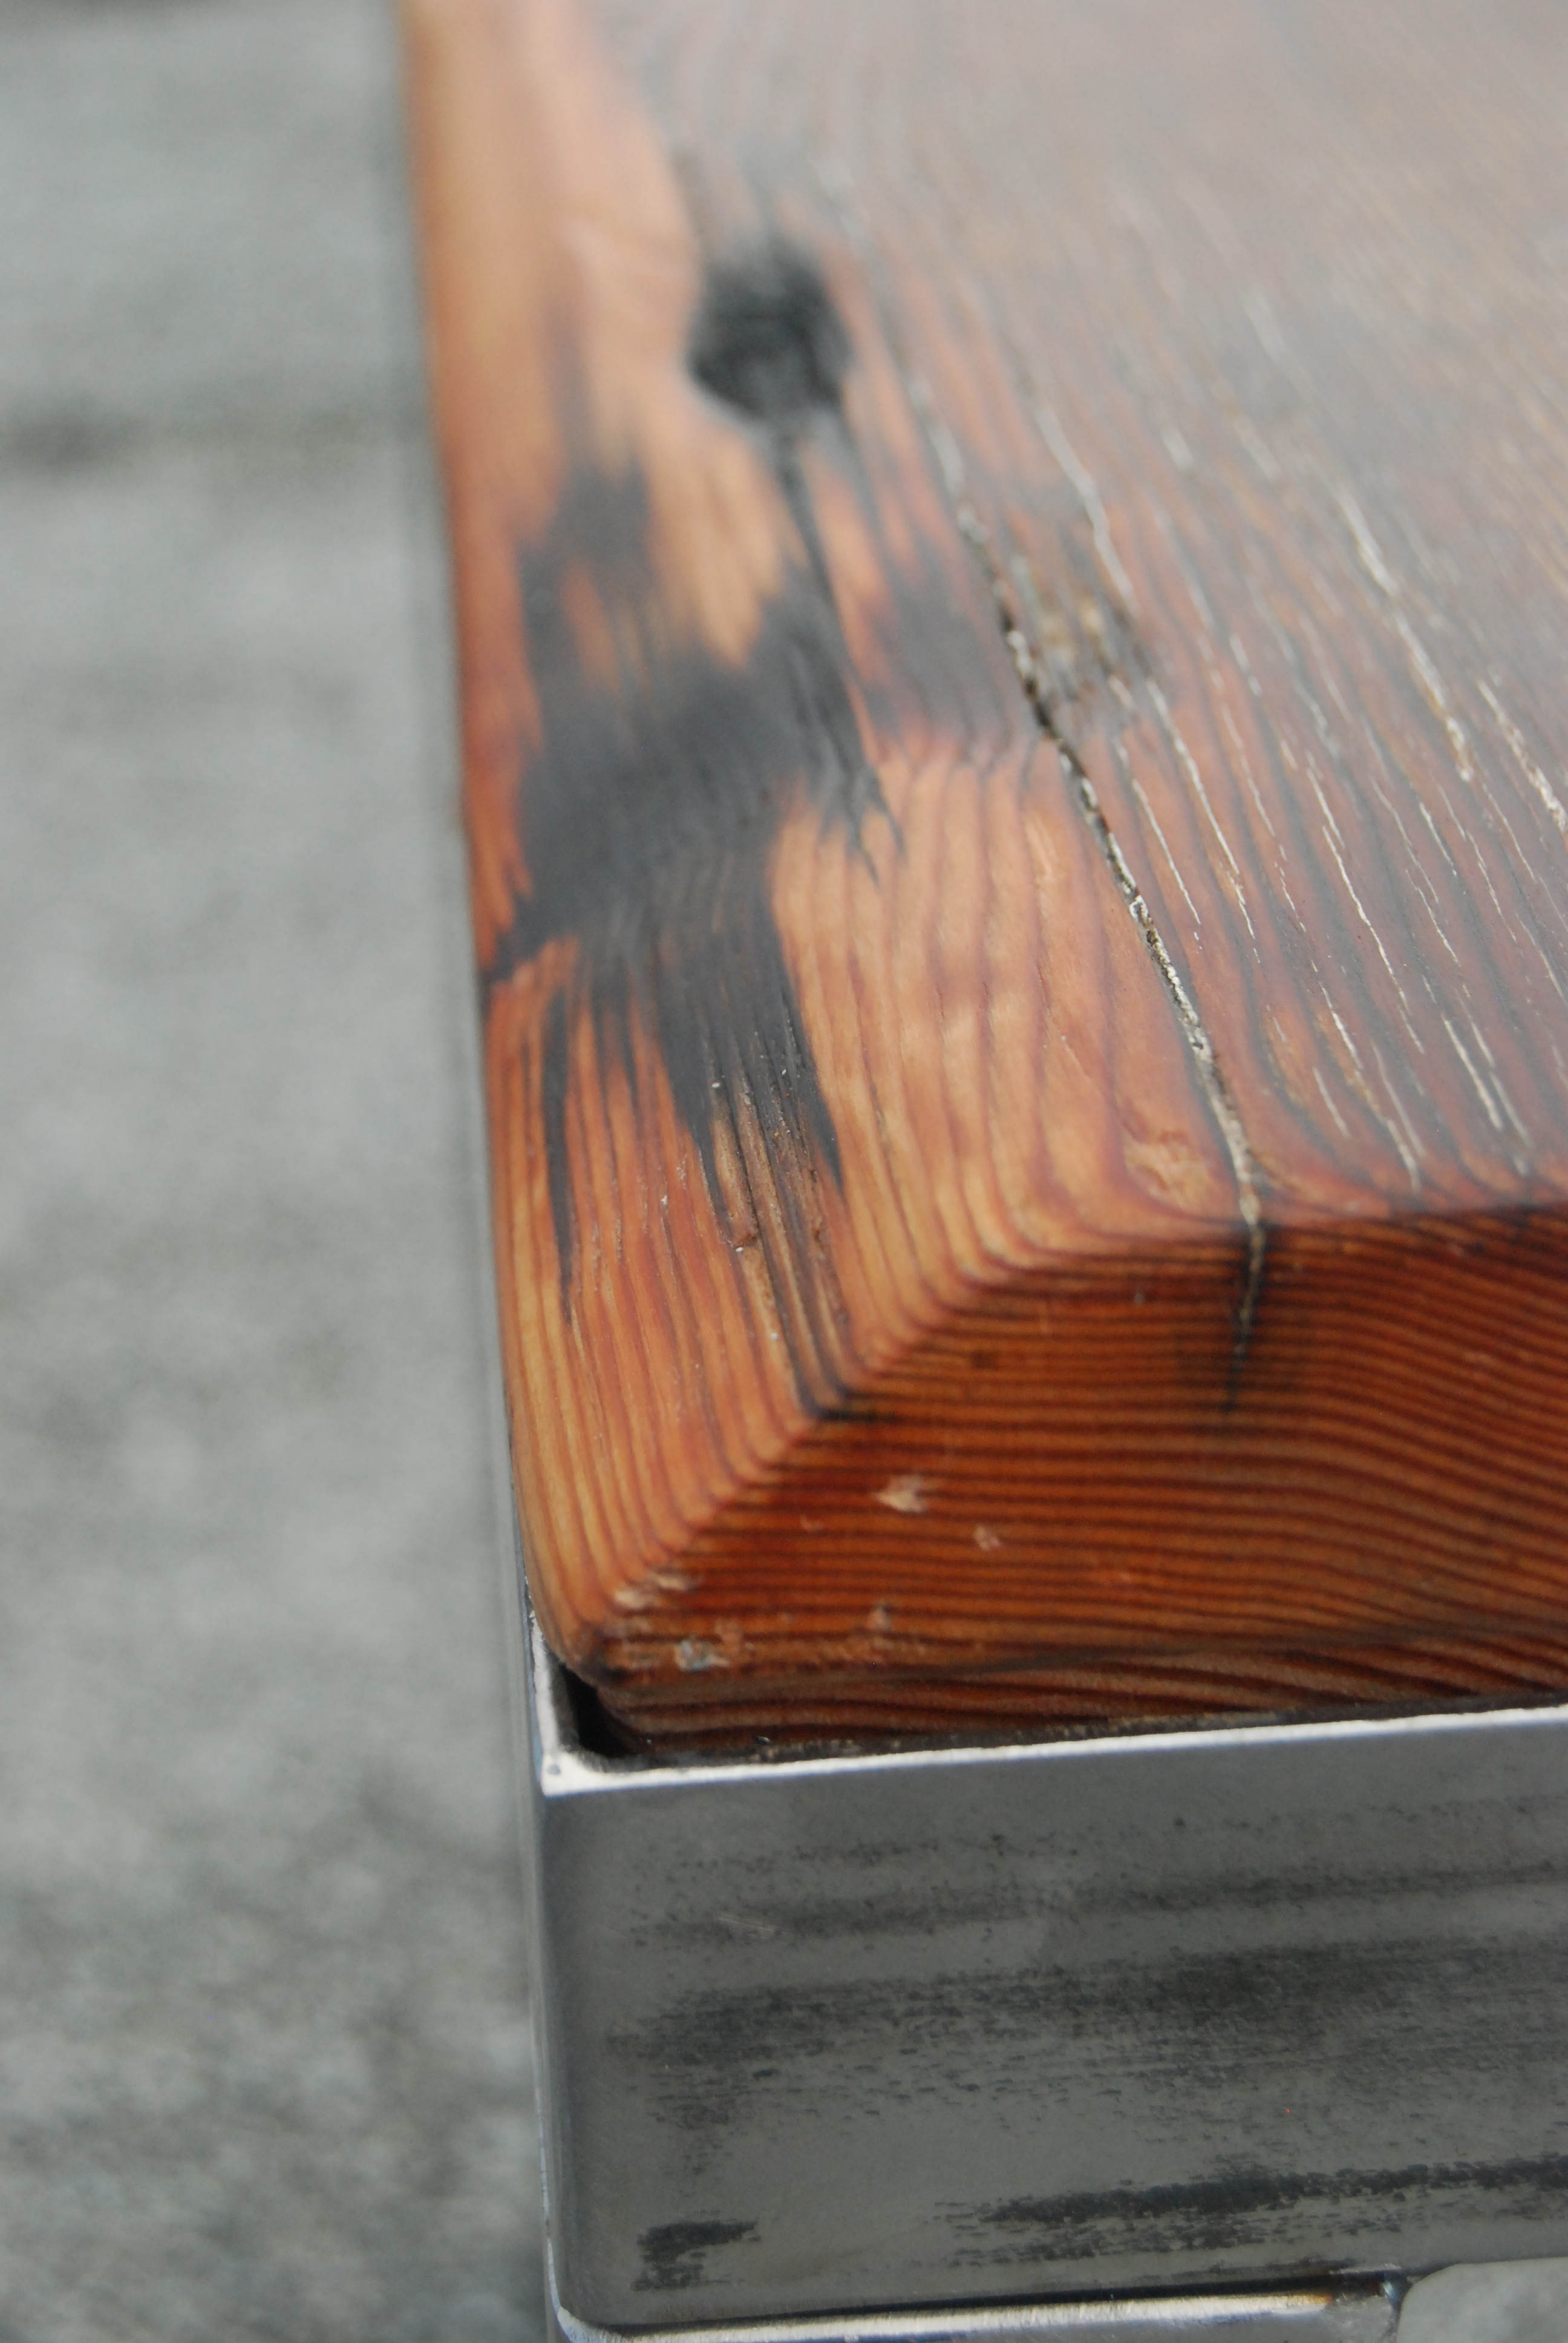 Salvaged Douglas Fir Top. Rough Polished Steel Carriage. Wax Finish.